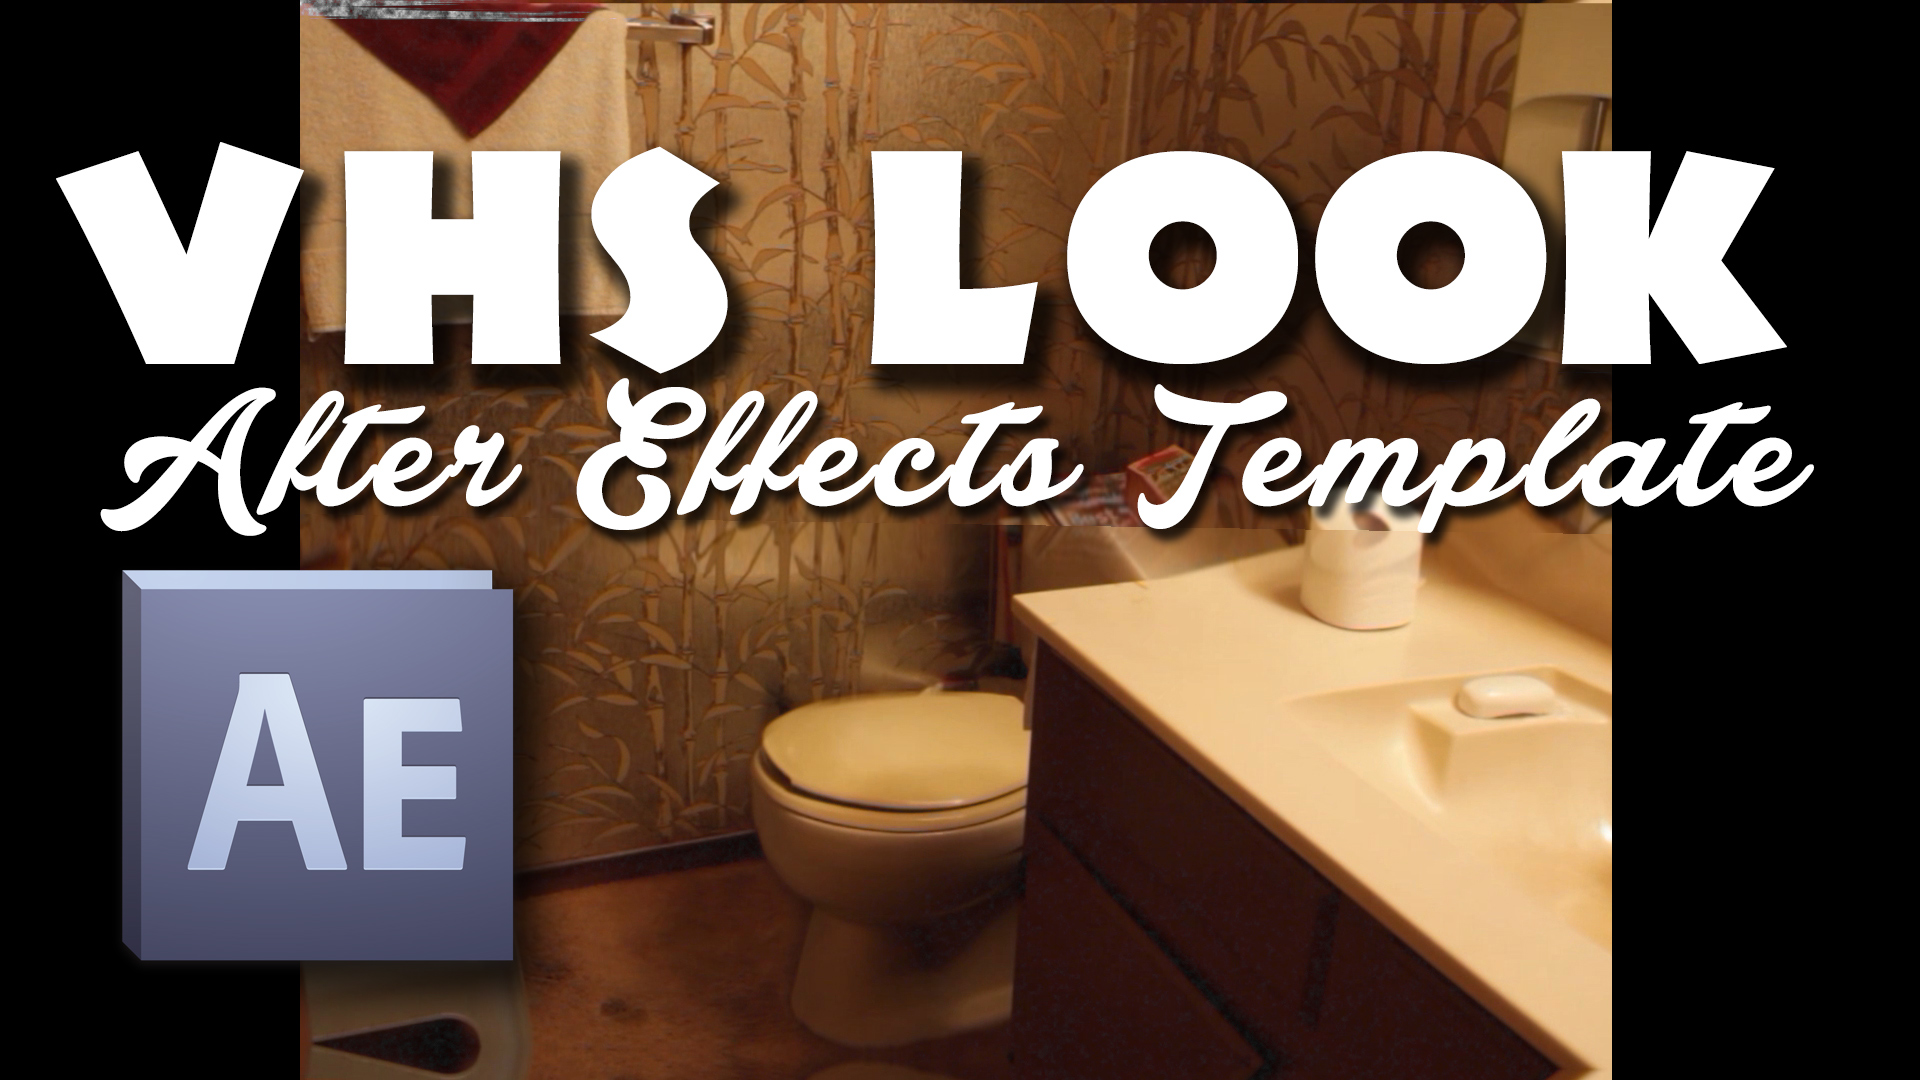 """Thumbnail image of bathroom that is an Adobe After Effects Product VHS look Template to make your videos look like 80s vhs tape with the noise if you open it in Adobe after effects, it's a free download, just put your email where it says """"Your Email"""" and click Download Now button below"""